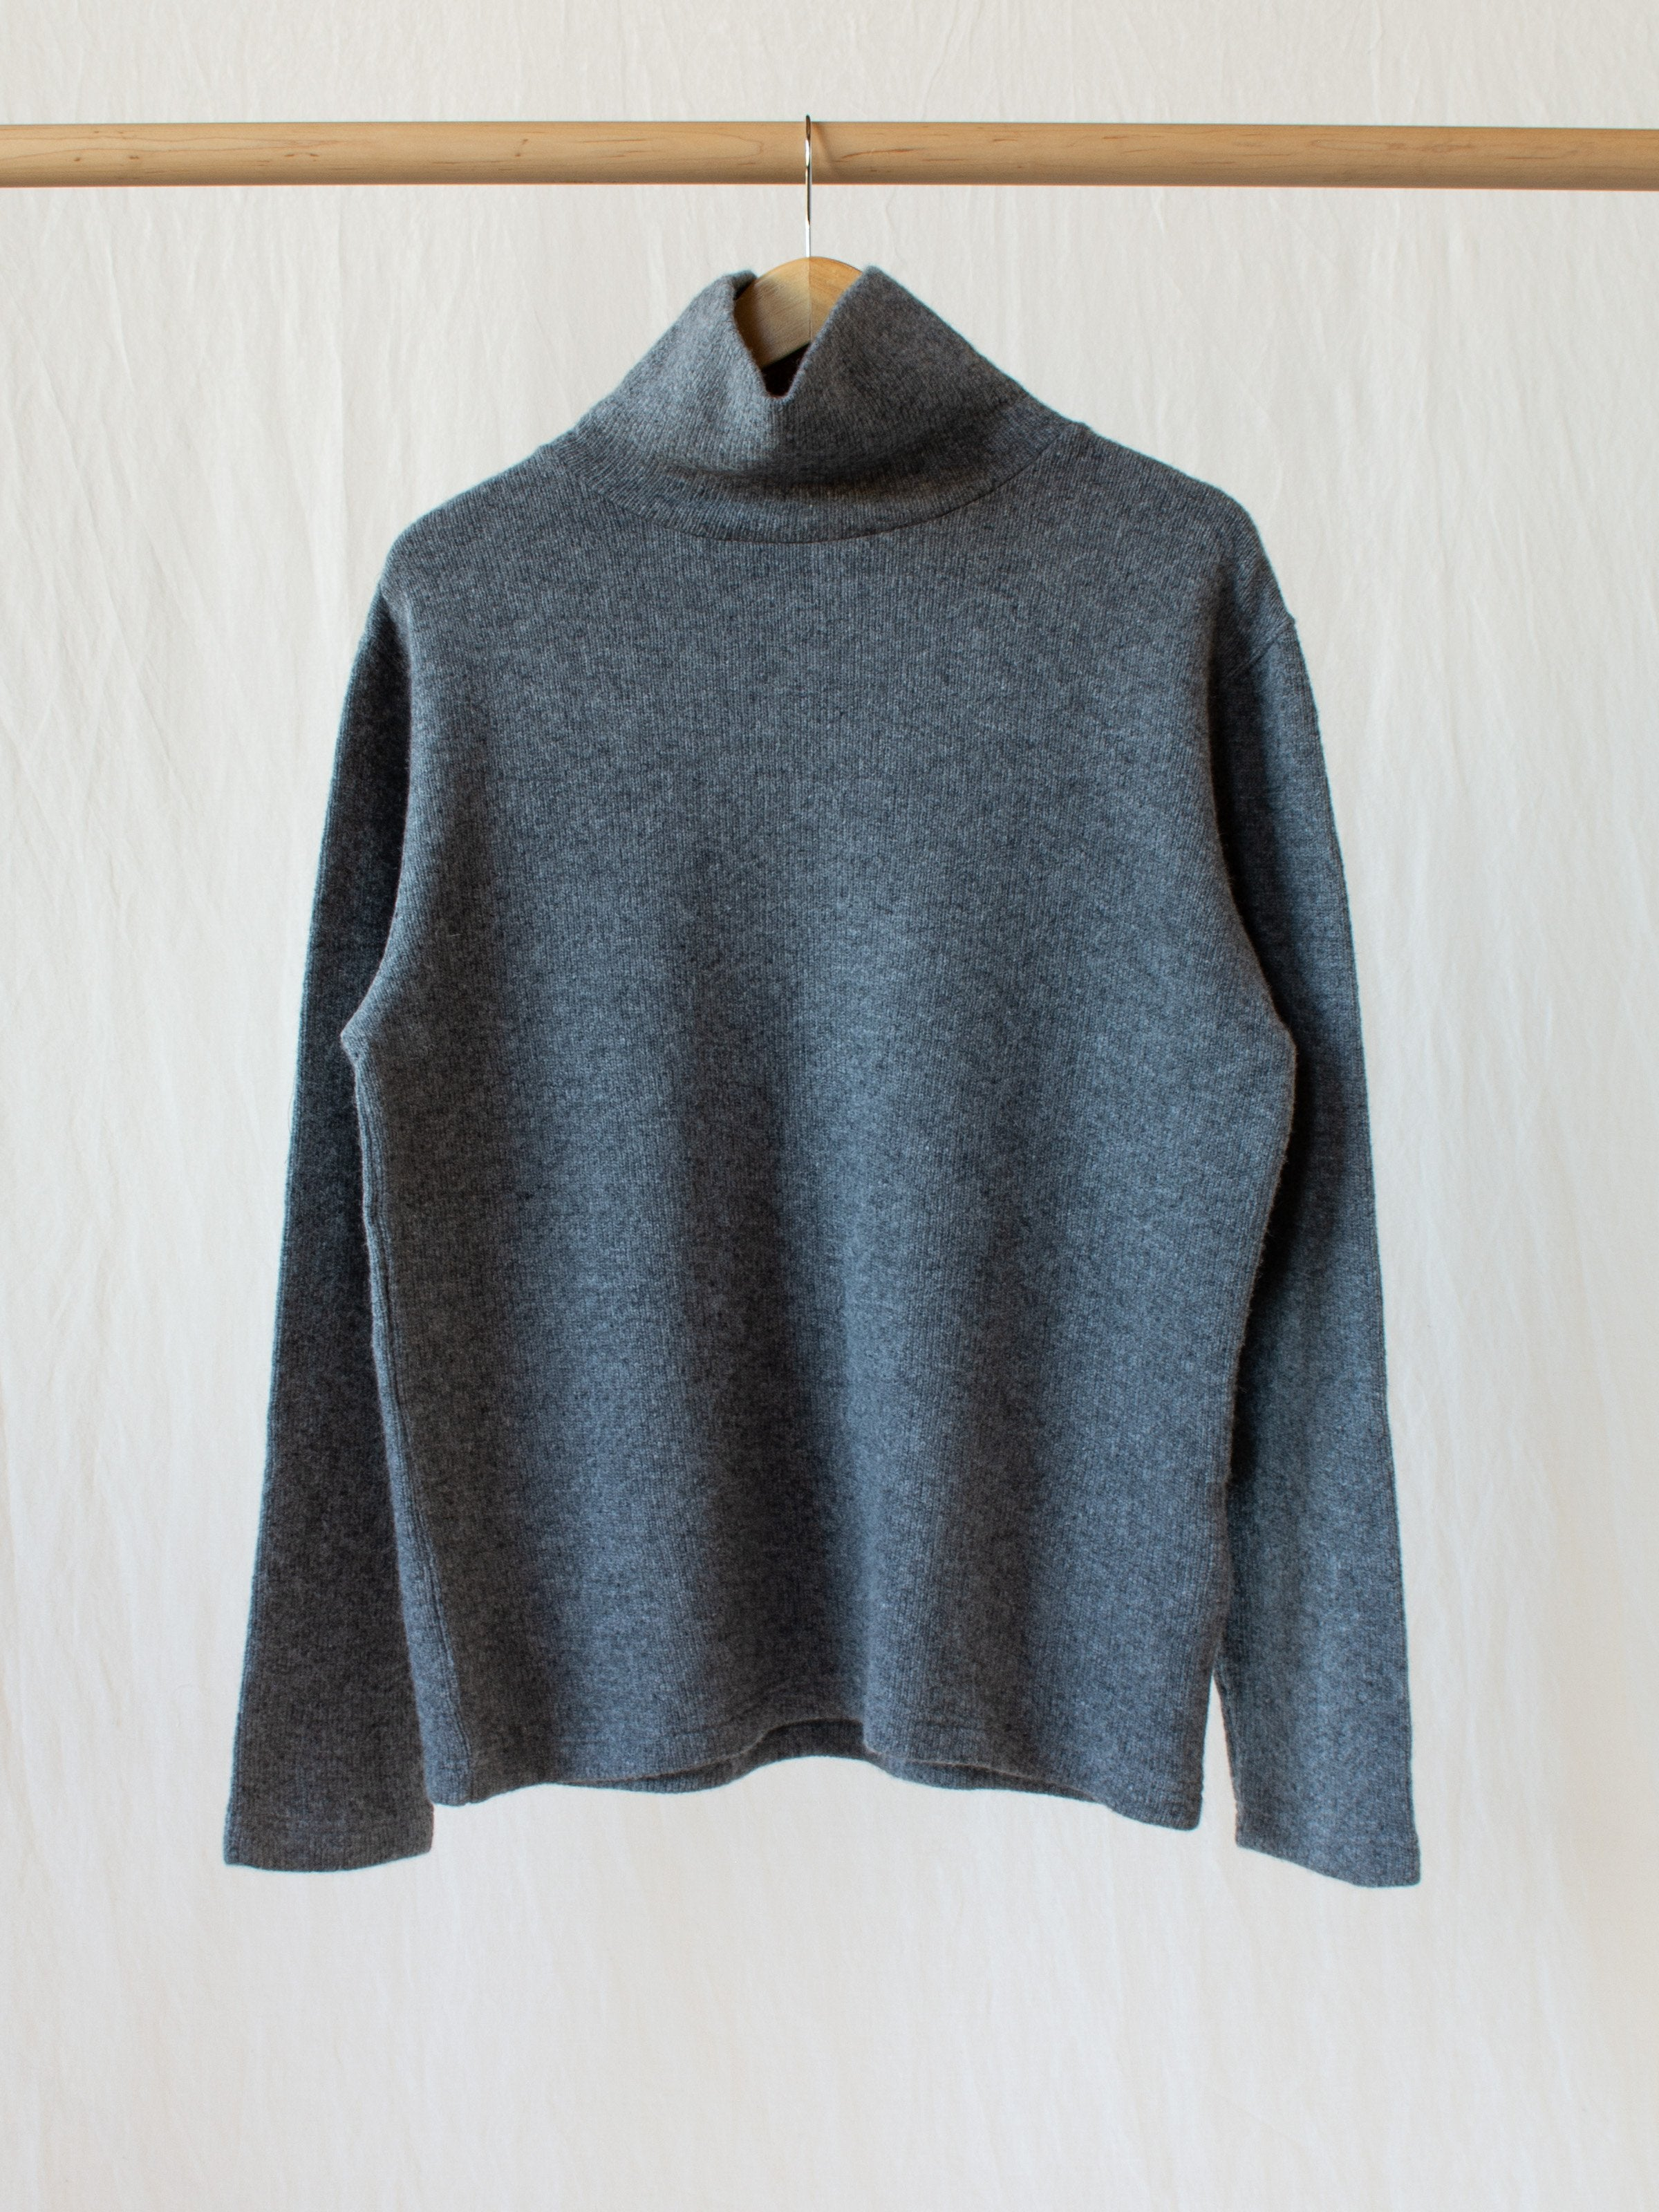 Namu Shop - ts(s) Wool Blend Turtleneck with Double Face Jersey Lining - Gray